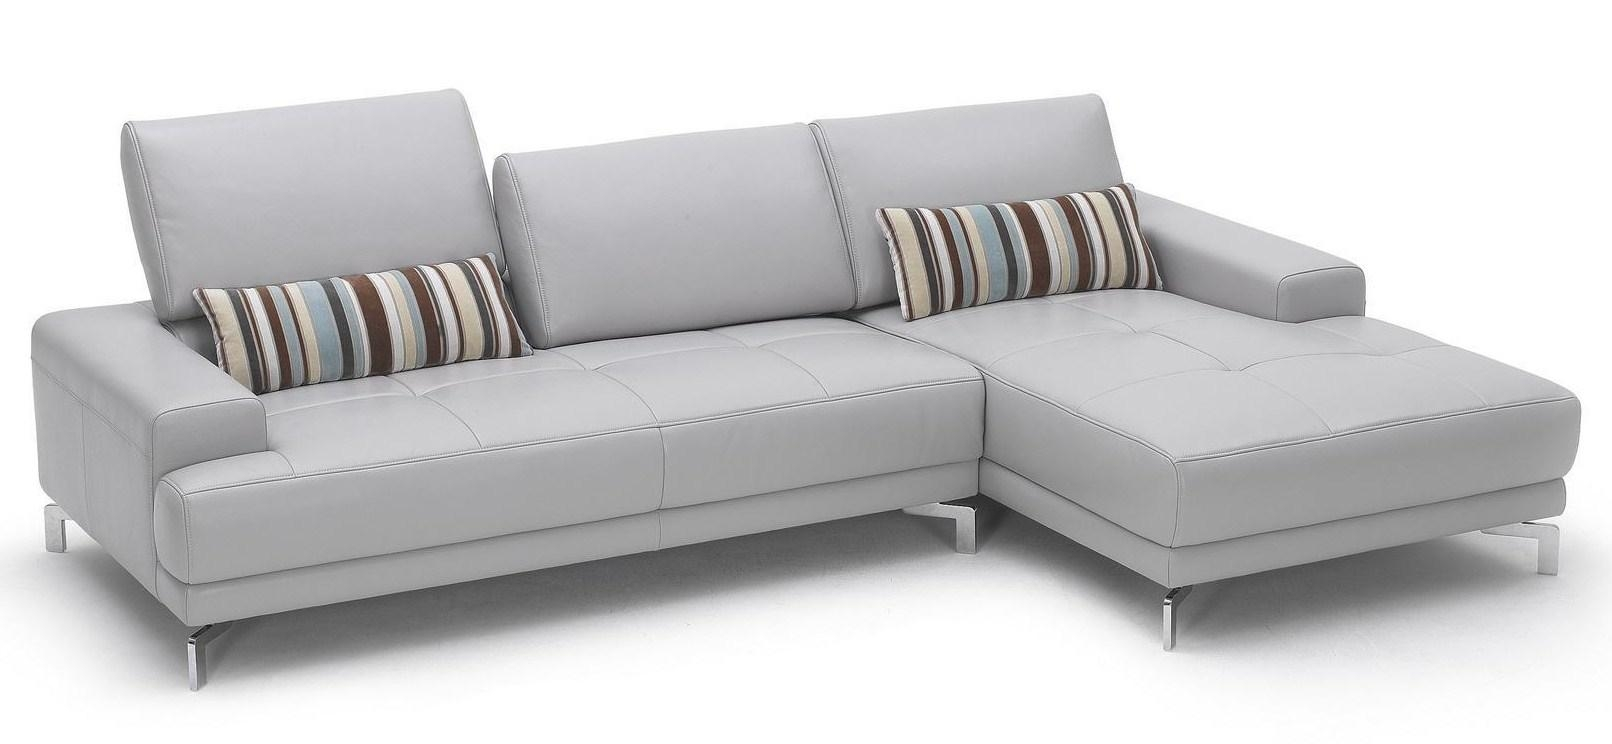 Modern Sofas Sofa Los Angeles For Small Spaces | Deseosol For Small Modern Sofas (Image 13 of 20)